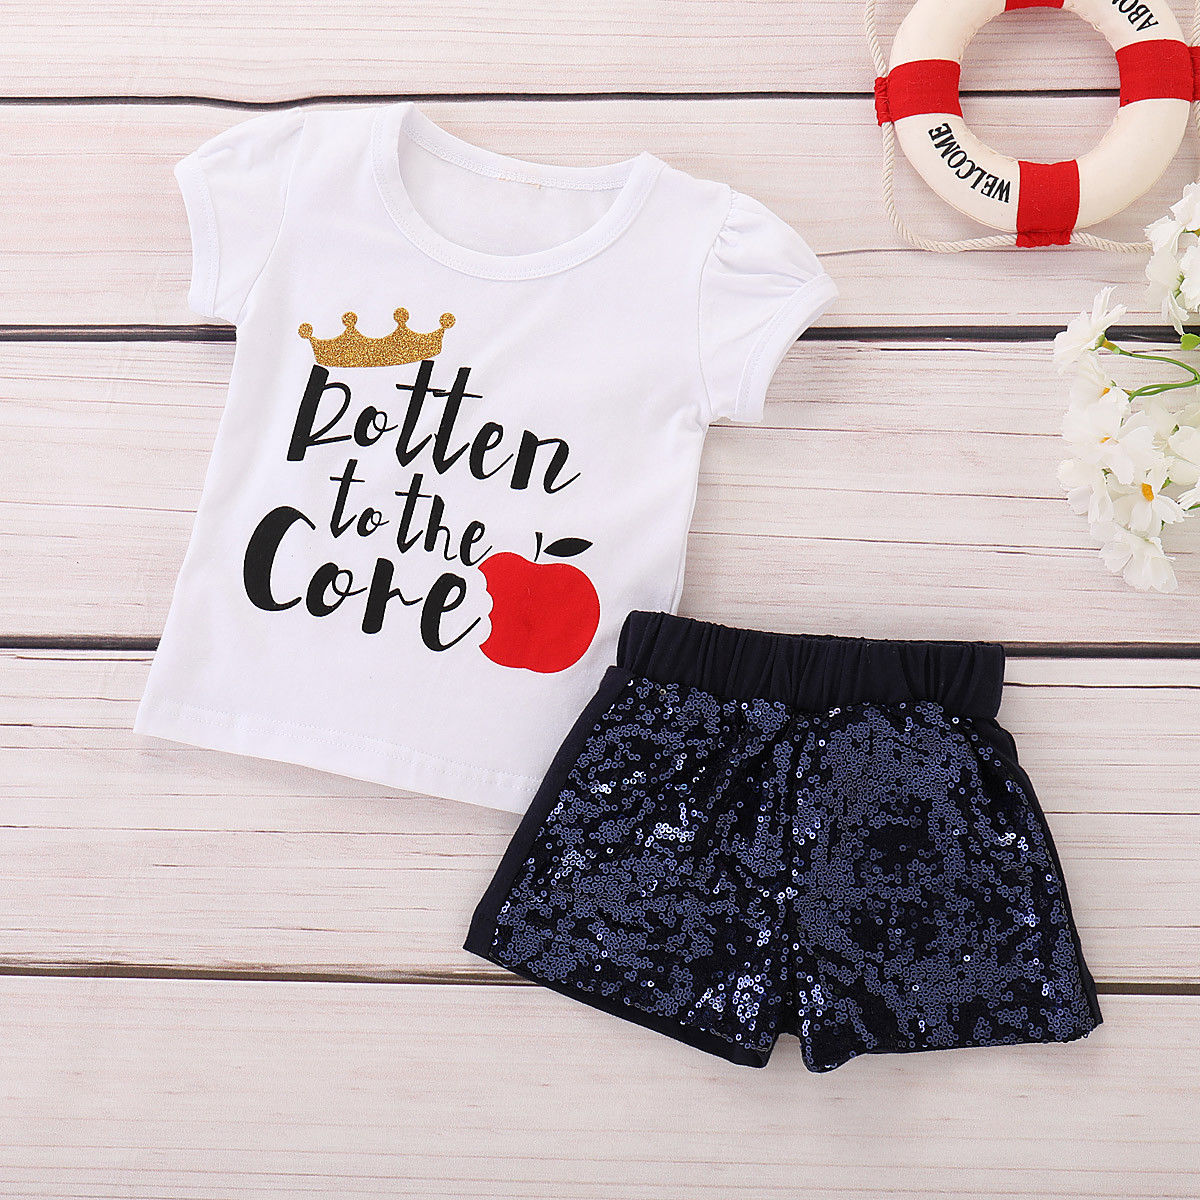 58d6d7693755 Cute T Shirts For Summer - BCD Tofu House